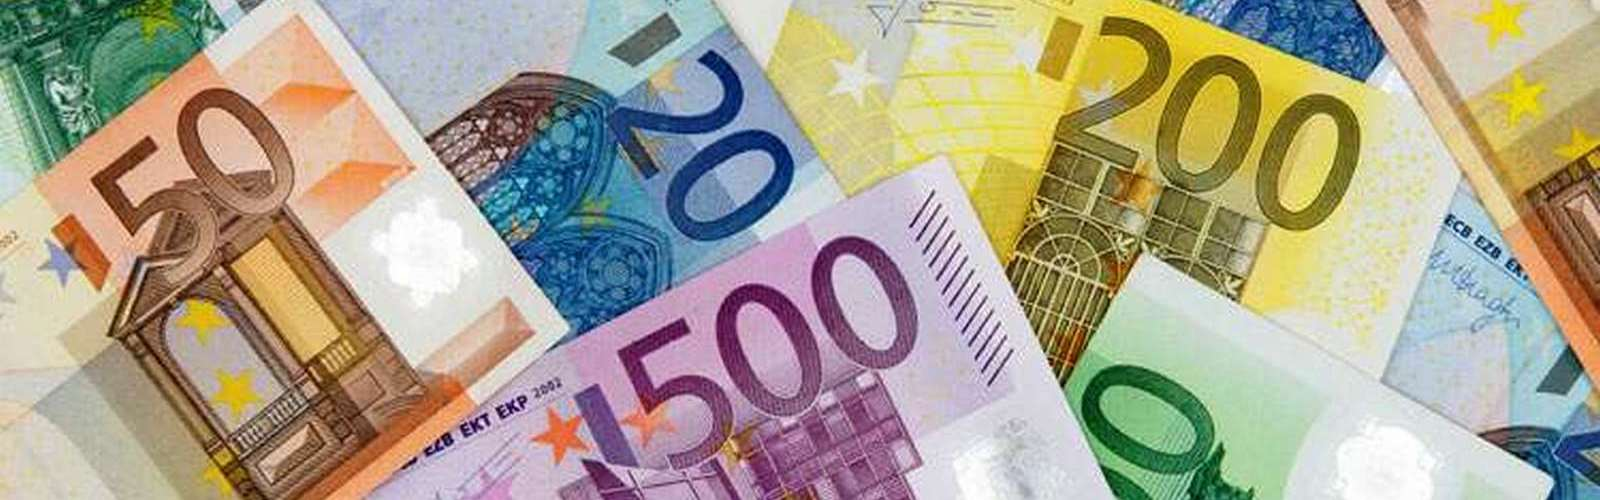 Buy Counterfeit European Euro online